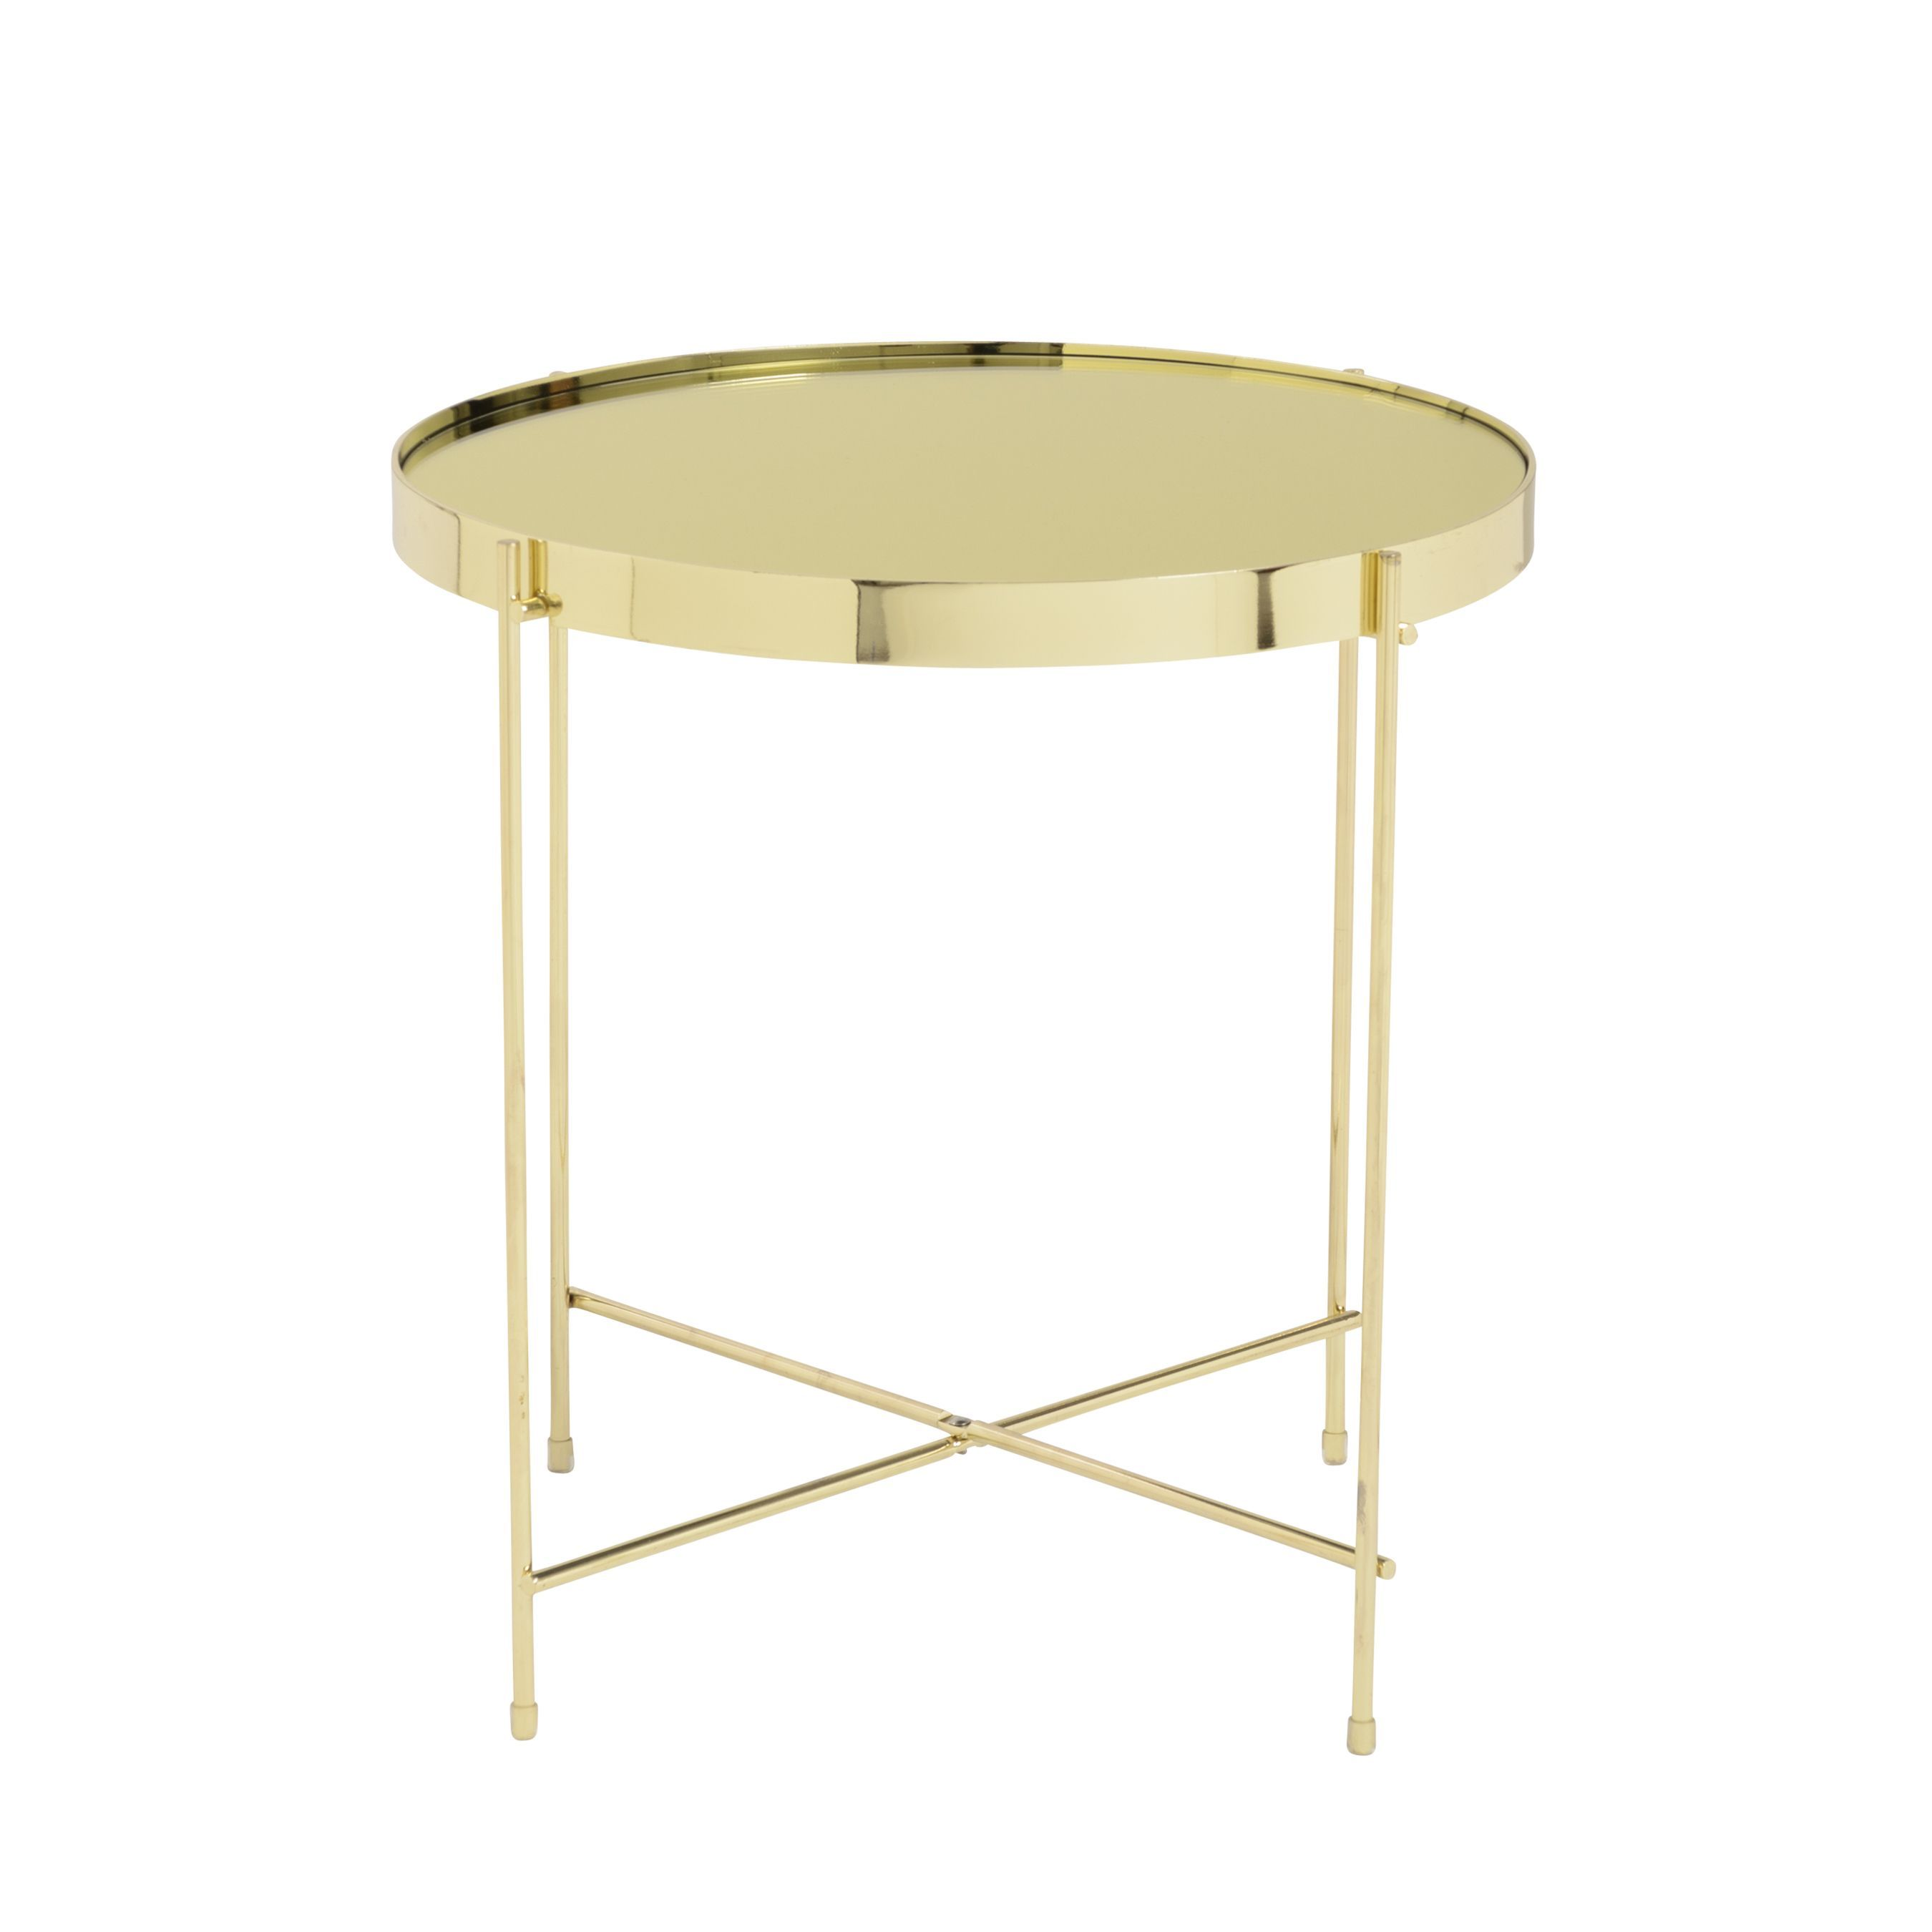 Euro Style Trinity High gloss Gold tone Base Glass Steel Round Side